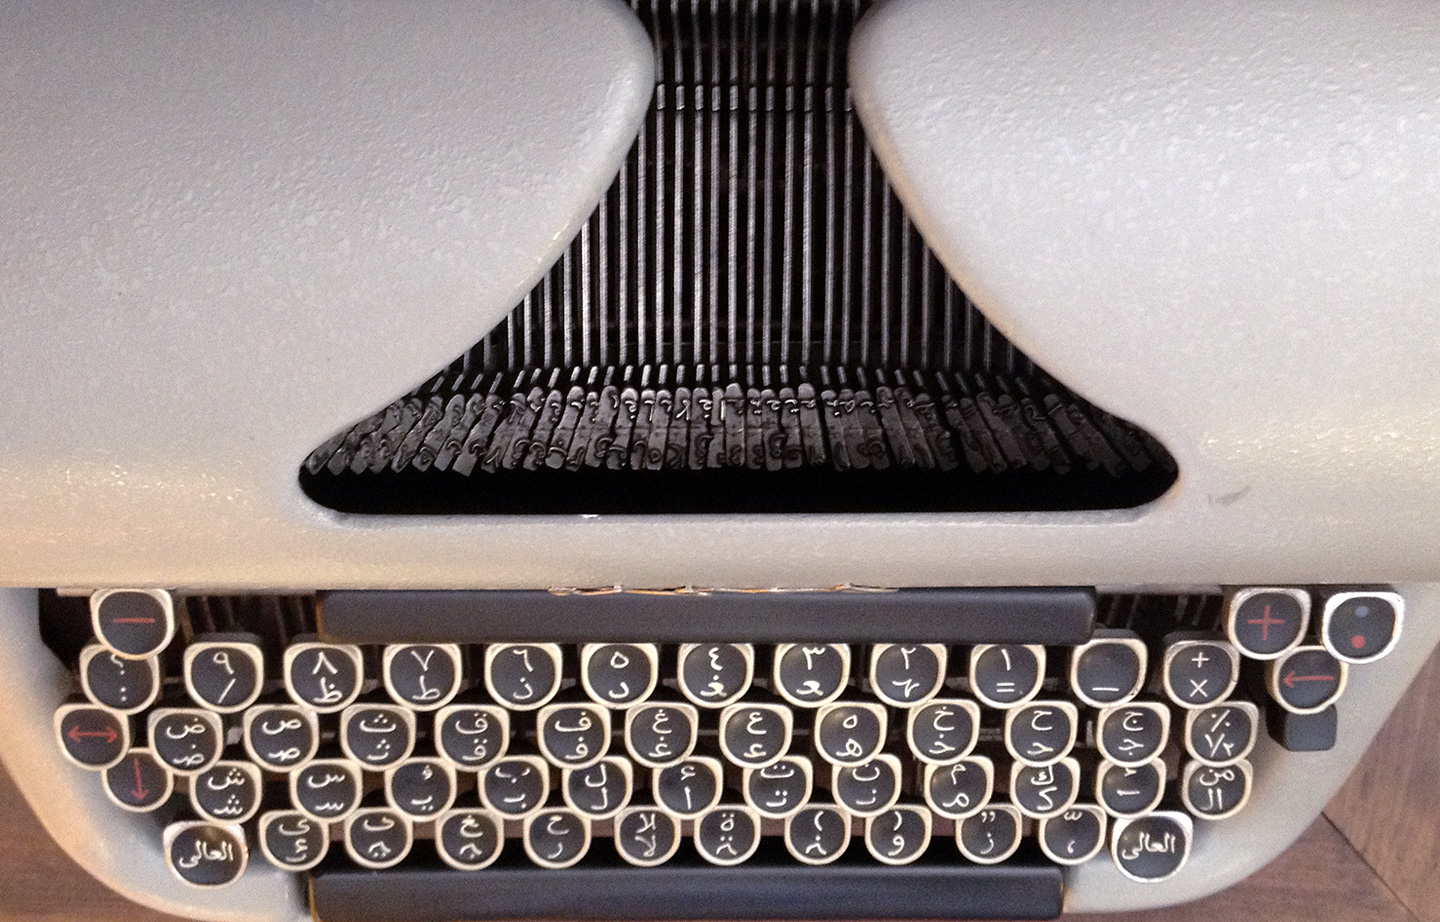 Optima typewriter for Arabic